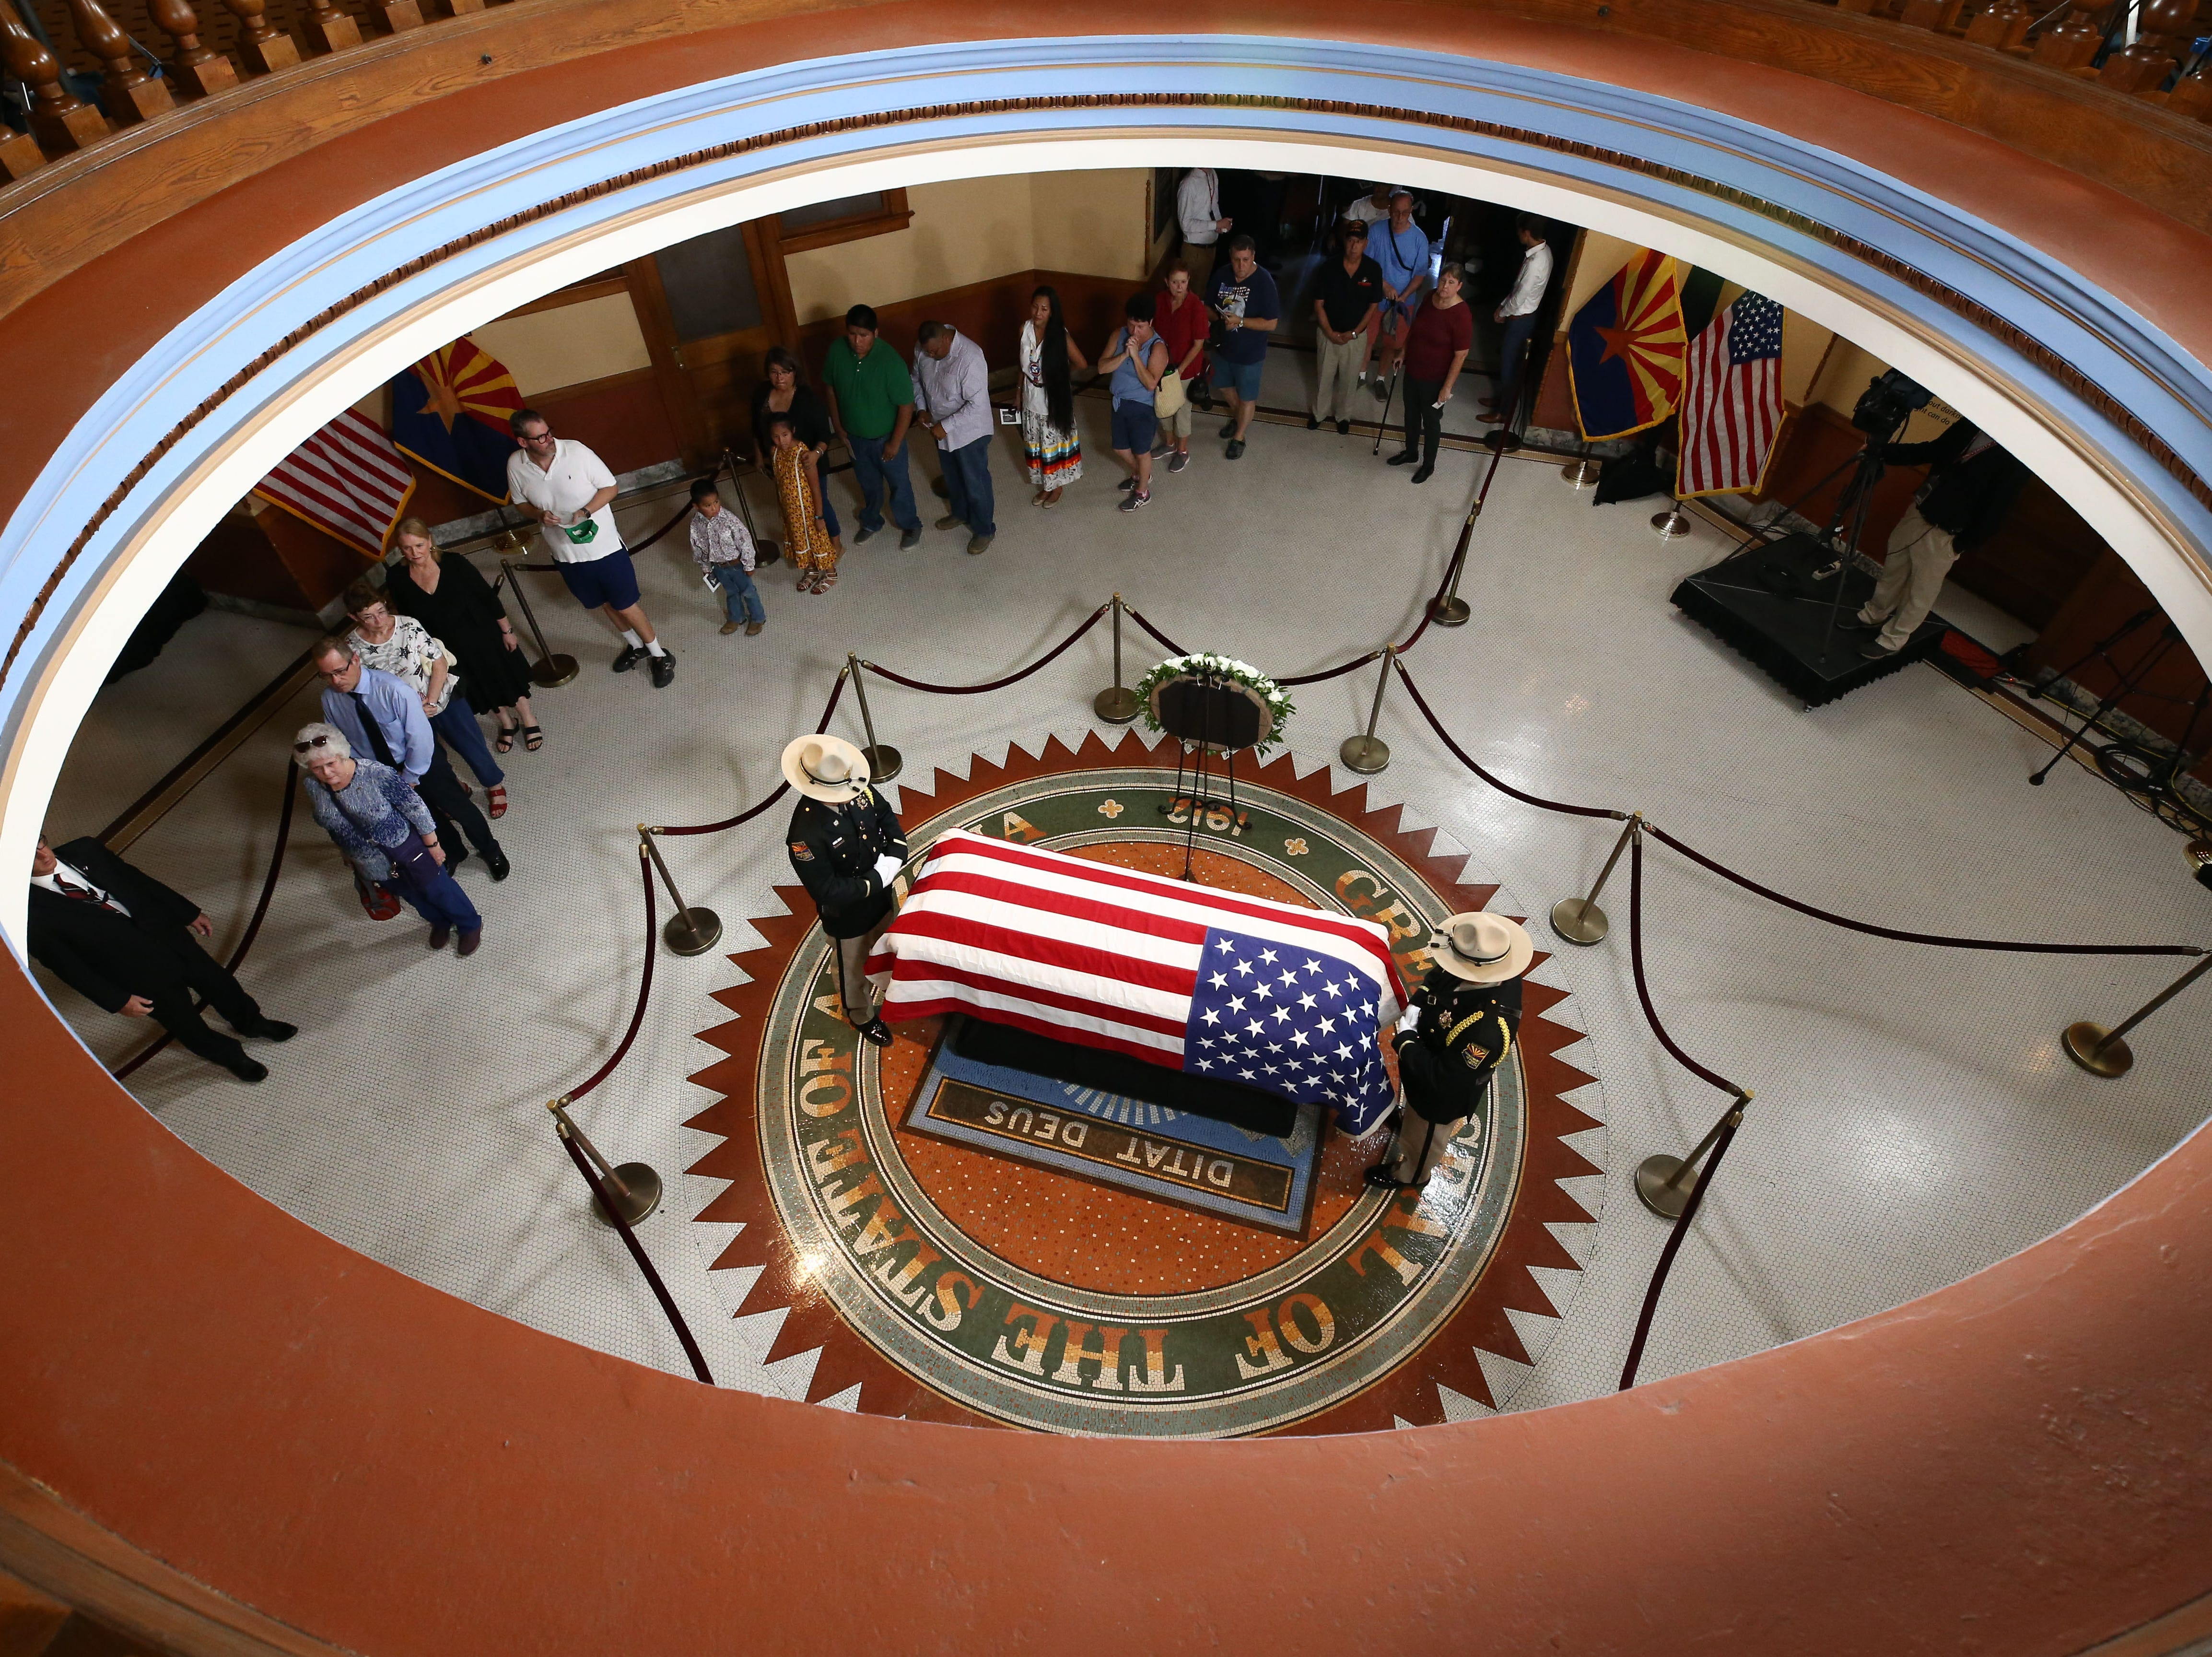 The public pays their respects to Senator John McCain as he lies in state in the Rotunda with an Arizona National Guard of Honor in attendance following his memorial service at the Arizona State Capitol on Aug. 29, 2018, in Phoenix, Ariz.